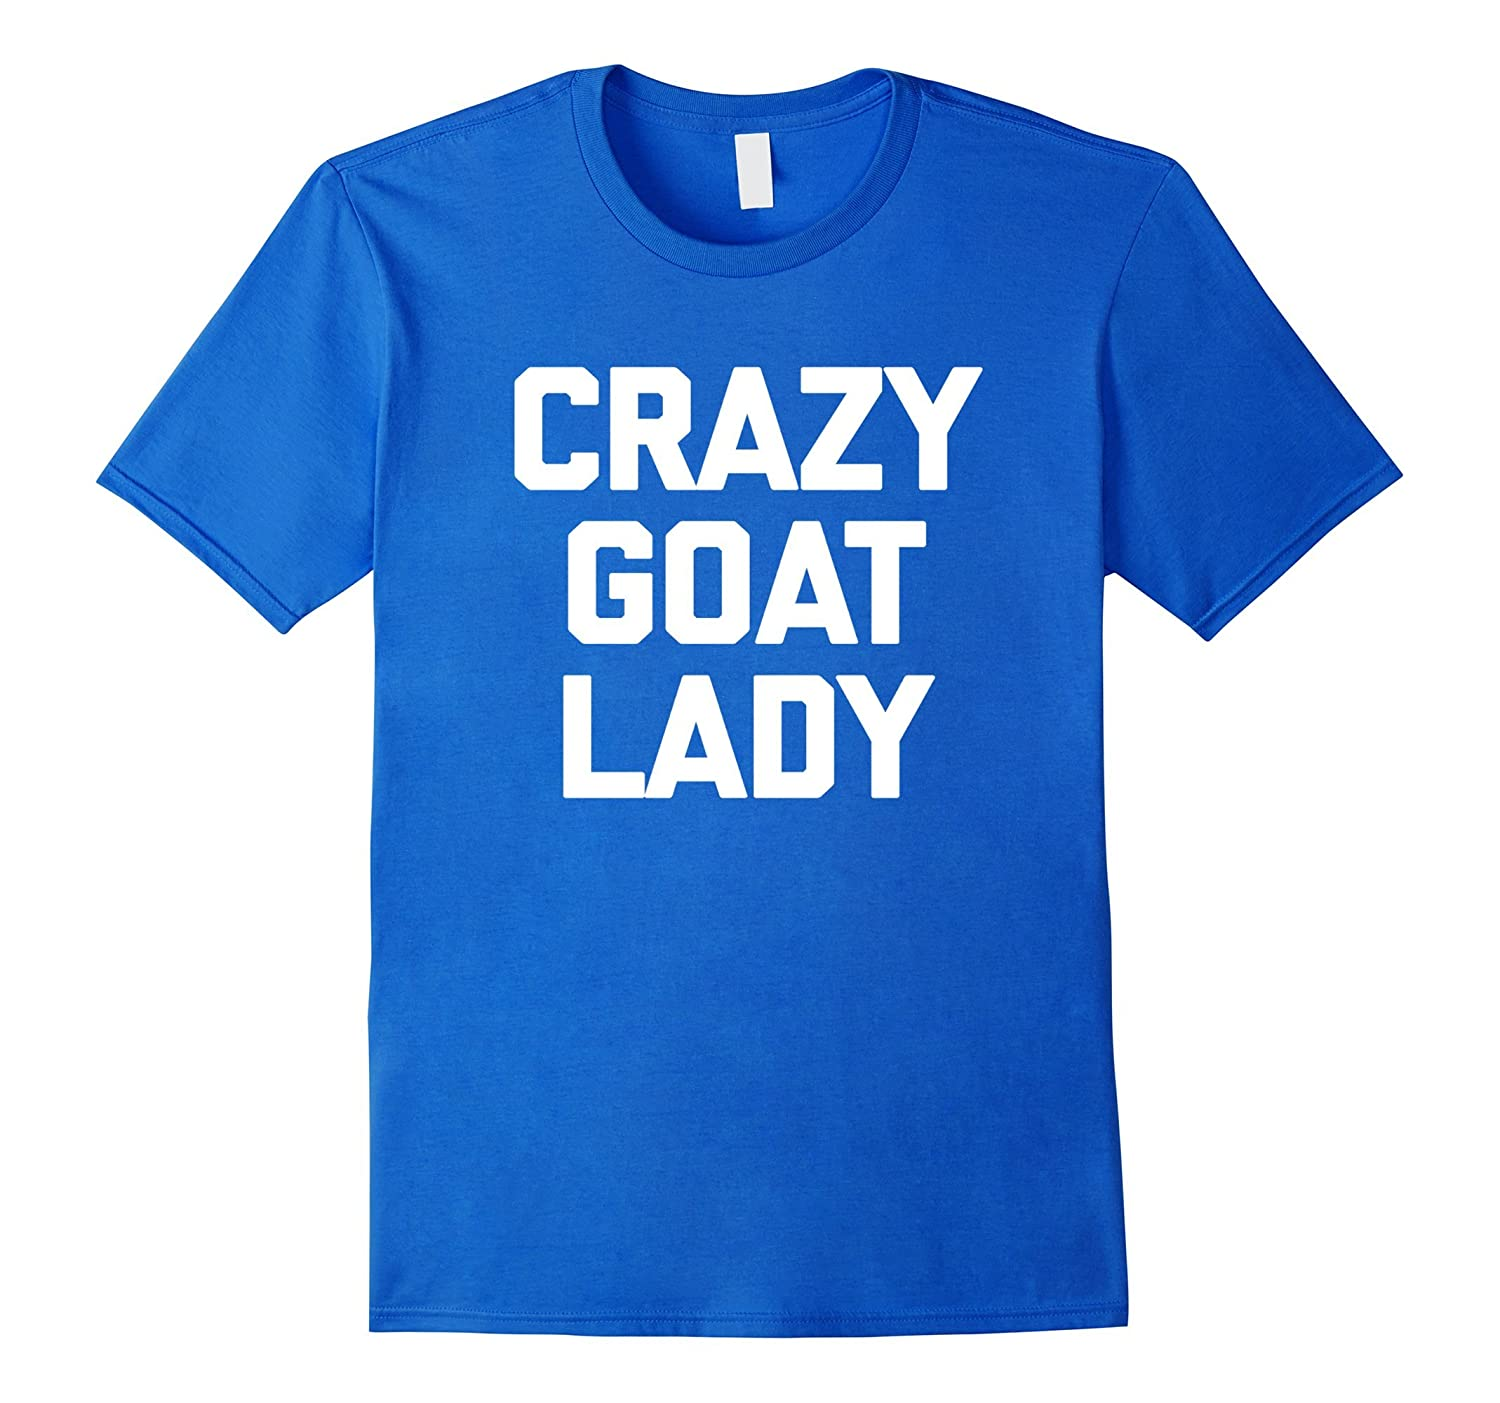 Crazy Goat Lady T-Shirt funny saying goats novelty humor tee